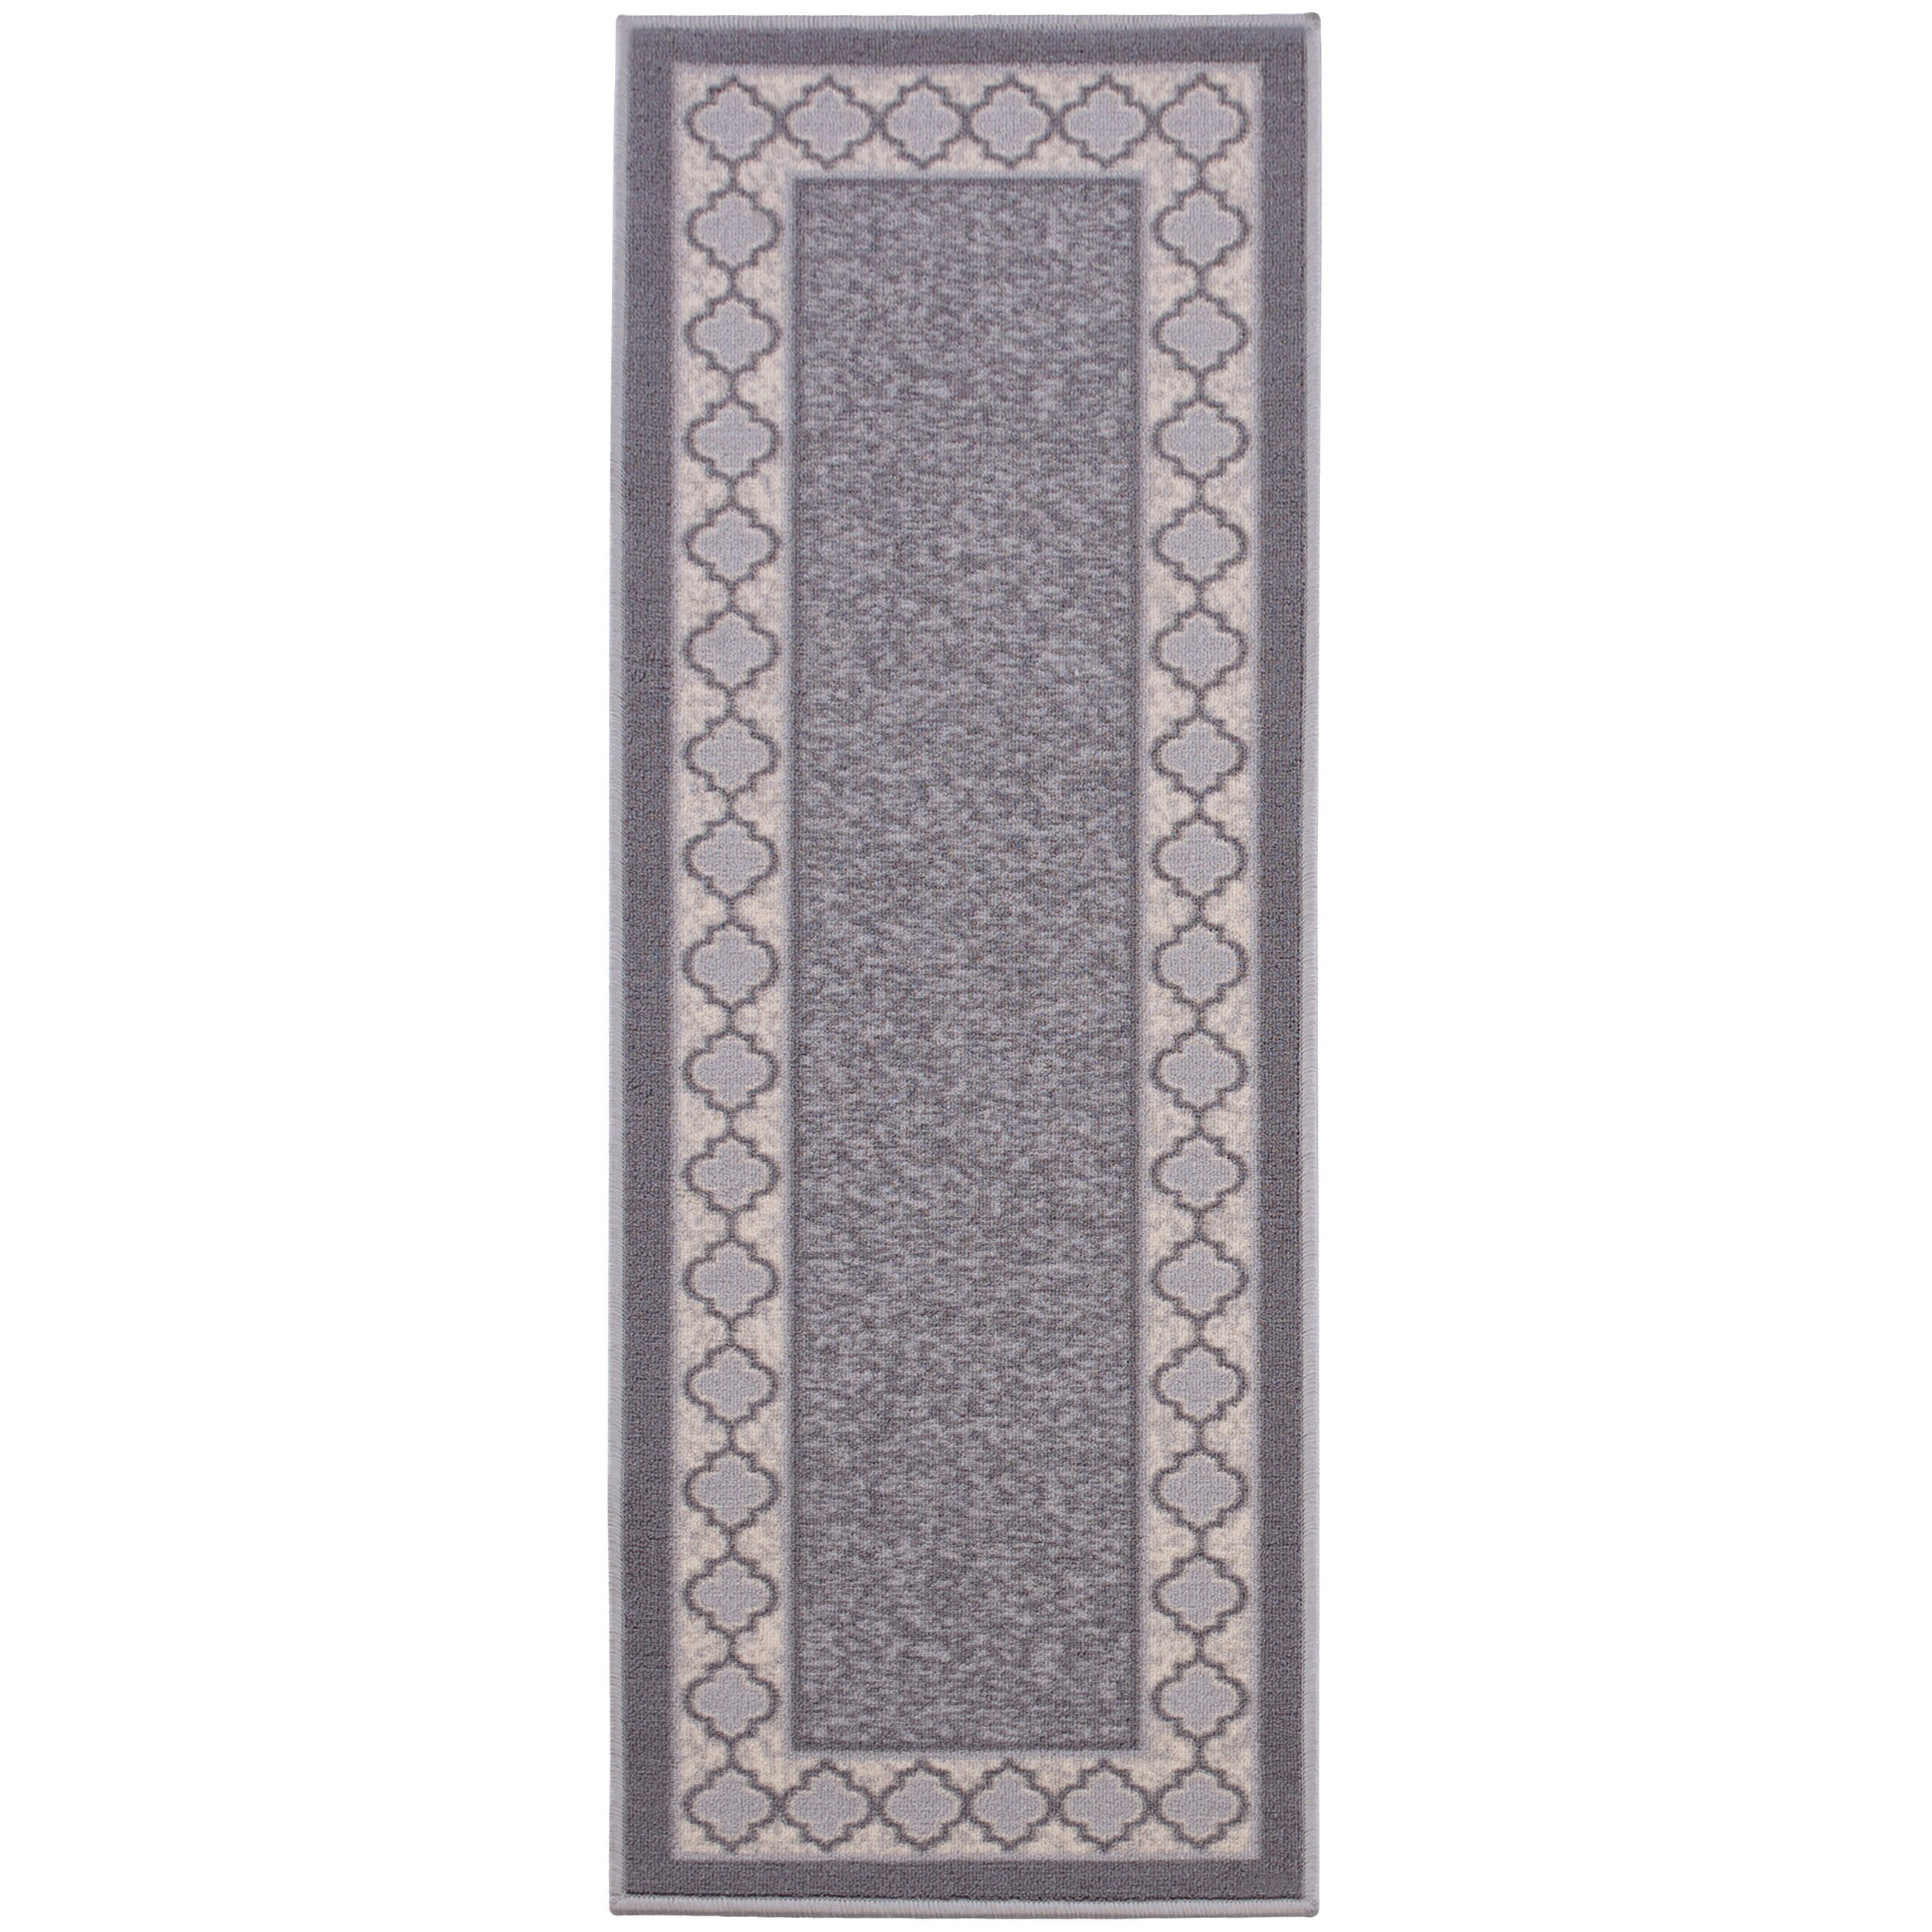 Area Rug Designs Diagona Designs Brown Area Rug Reviews